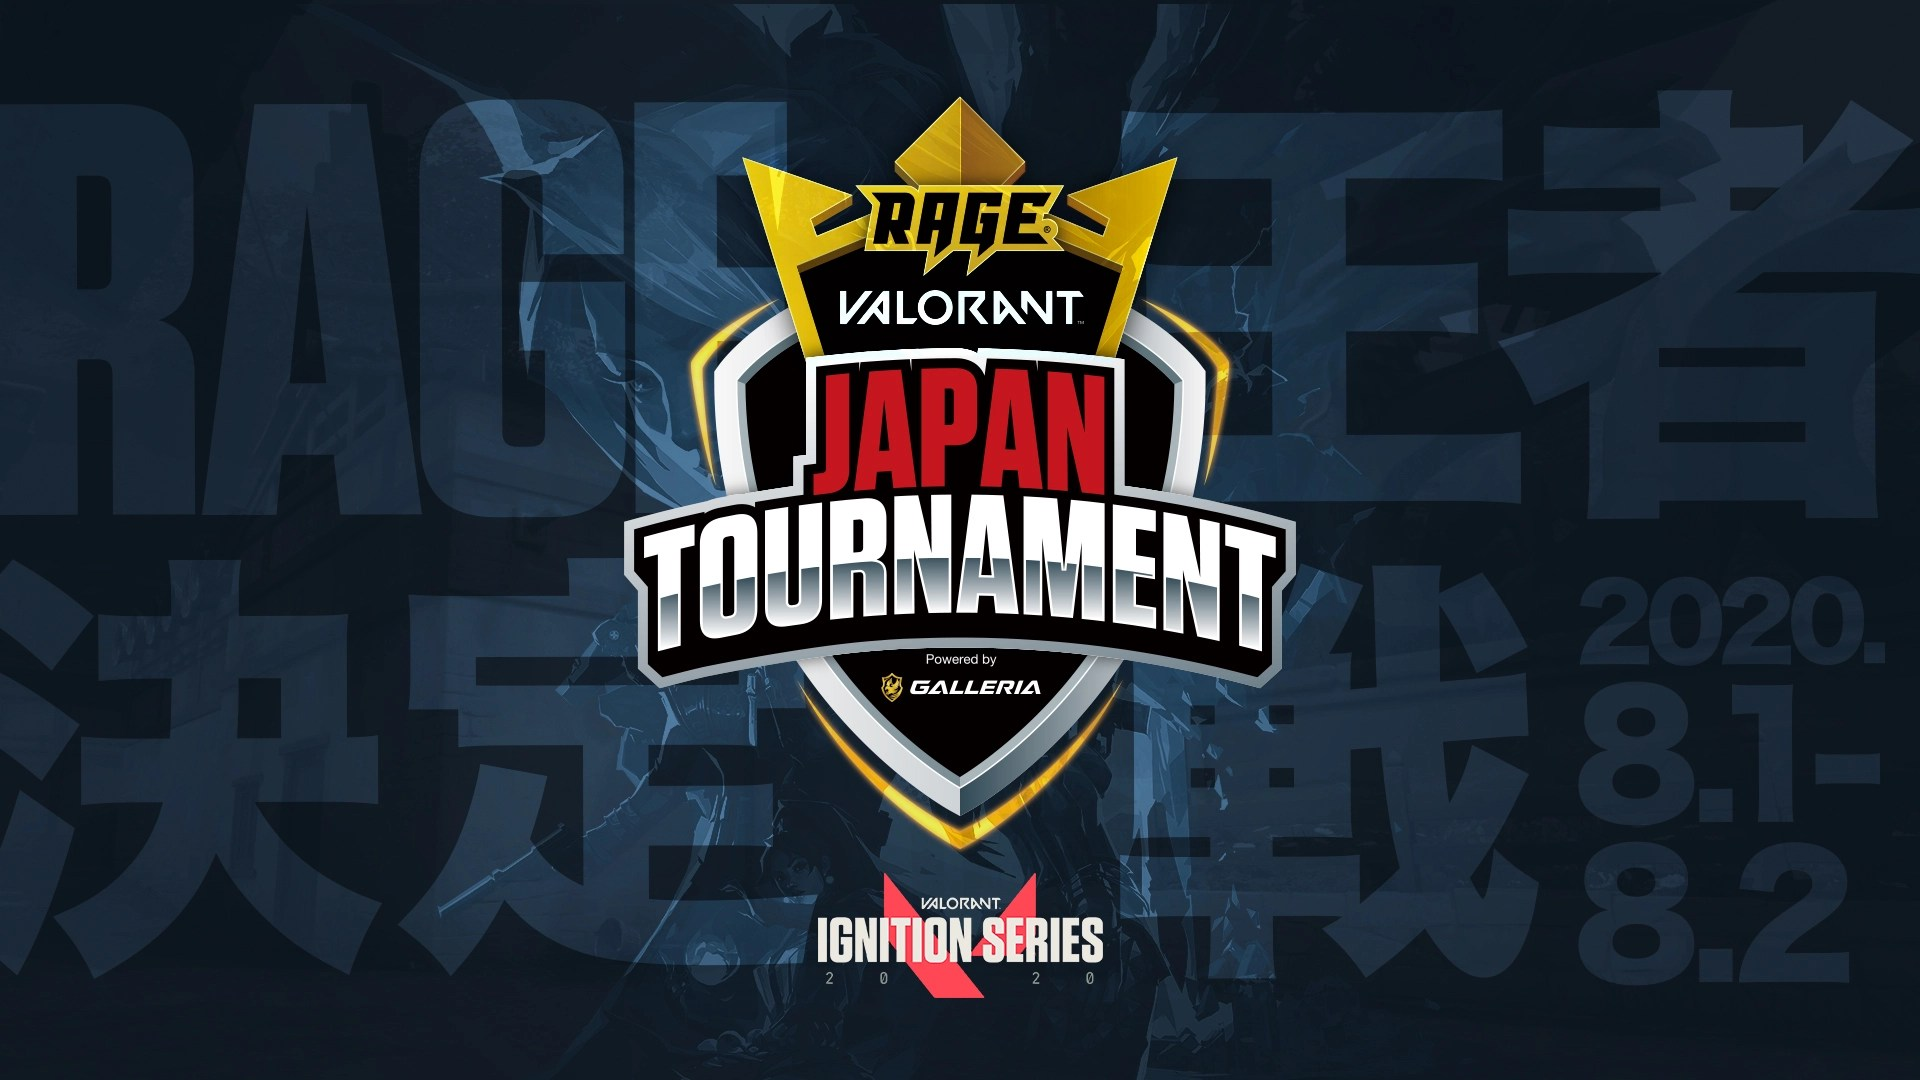 RAGE VALORANT JAPAN TOURNAMENT Powered by GALLERIA